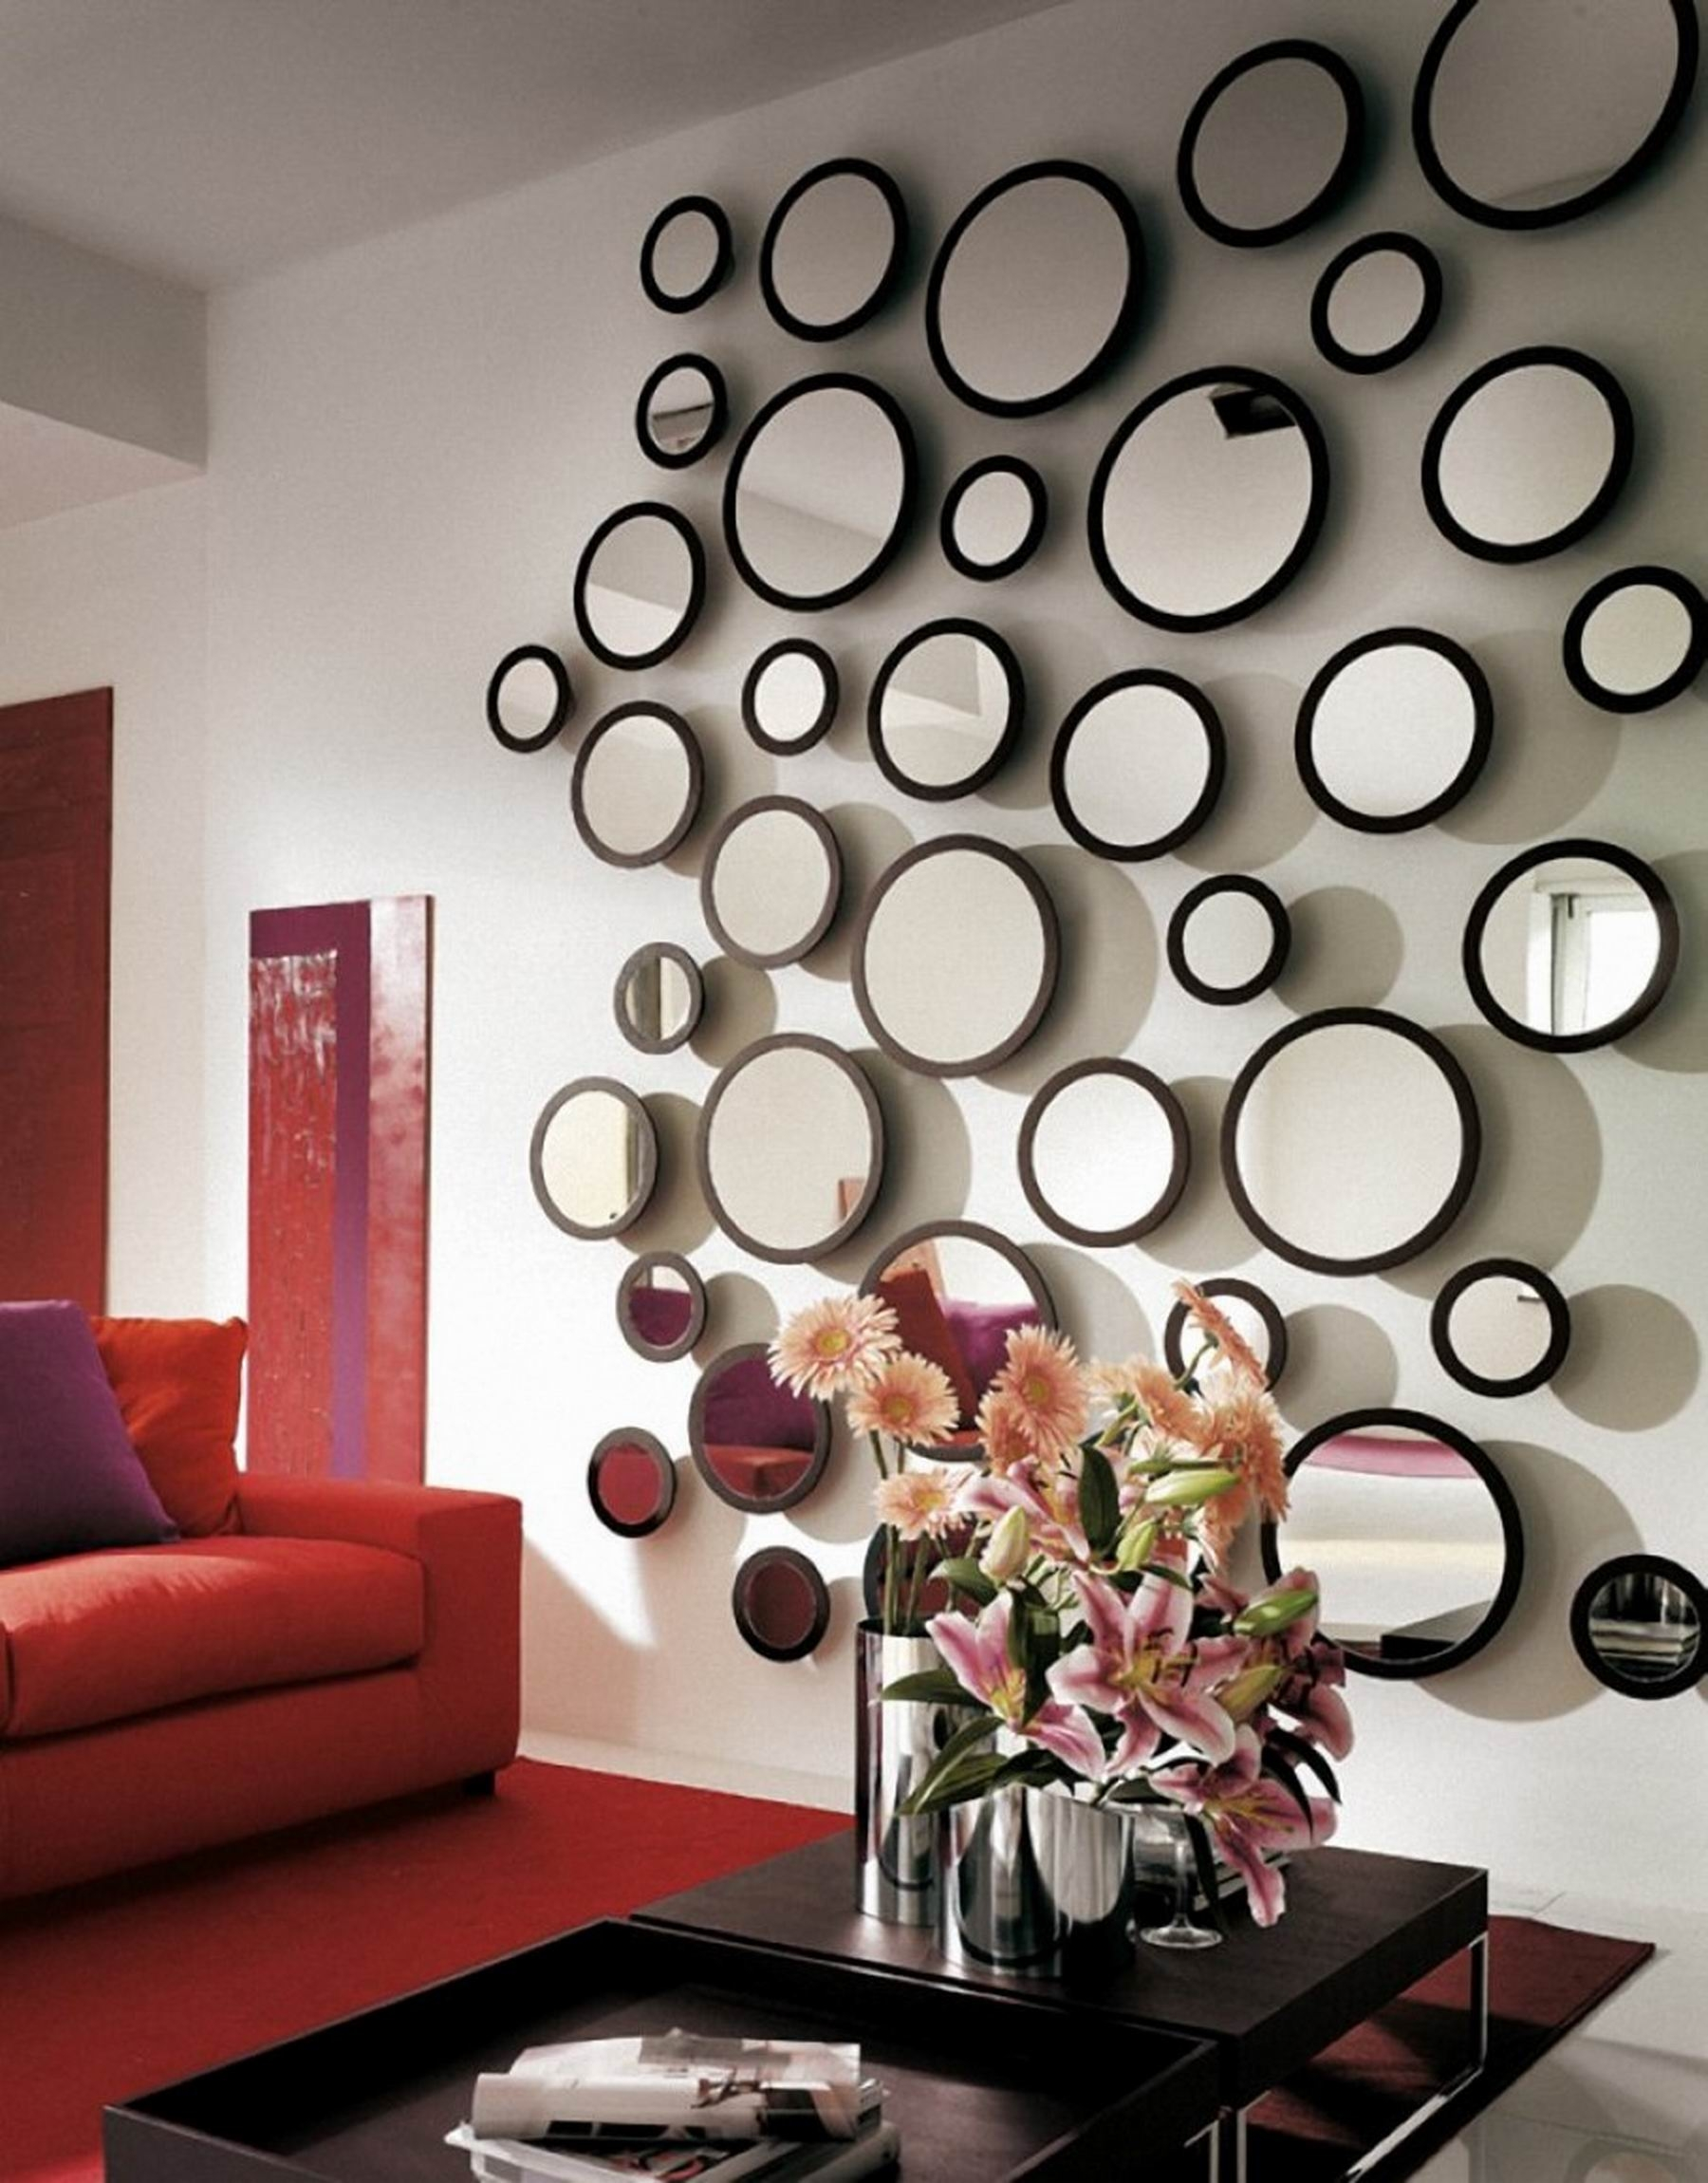 Mirror Wall Decor Ideas For Living Room Mirror Wall Decor Ideas For Living Room amazing of wall decorating ideas for living room at wall 1764 1800 X 2300